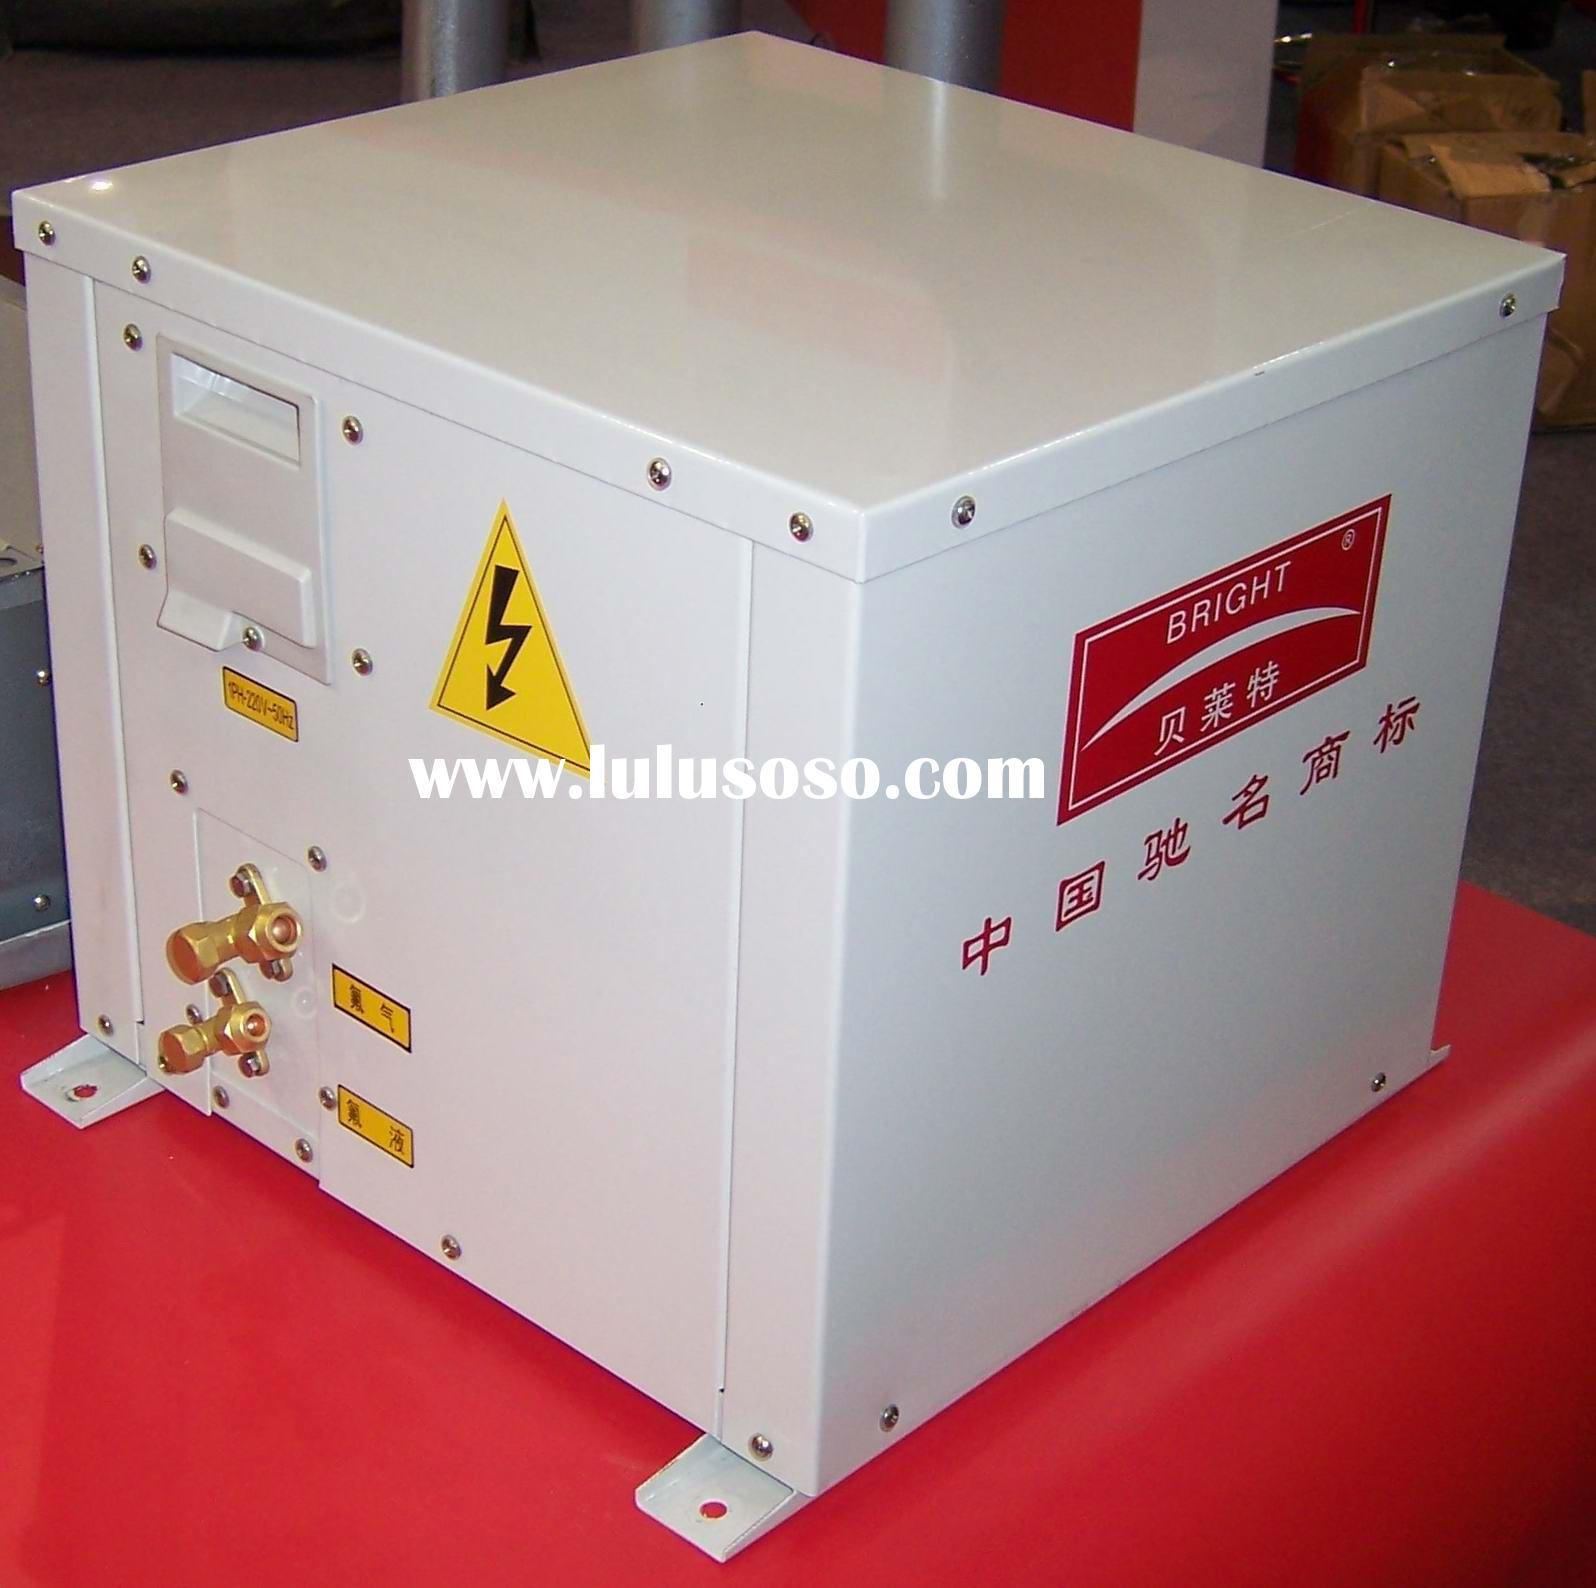 #B59716 CARRIER WATER SOURCE HEAT PUMPS – HEAT PUMP SYSTEMS Brand New 1611 Carrier Air Source Heat Pump images with 1596x1588 px on helpvideos.info - Air Conditioners, Air Coolers and more